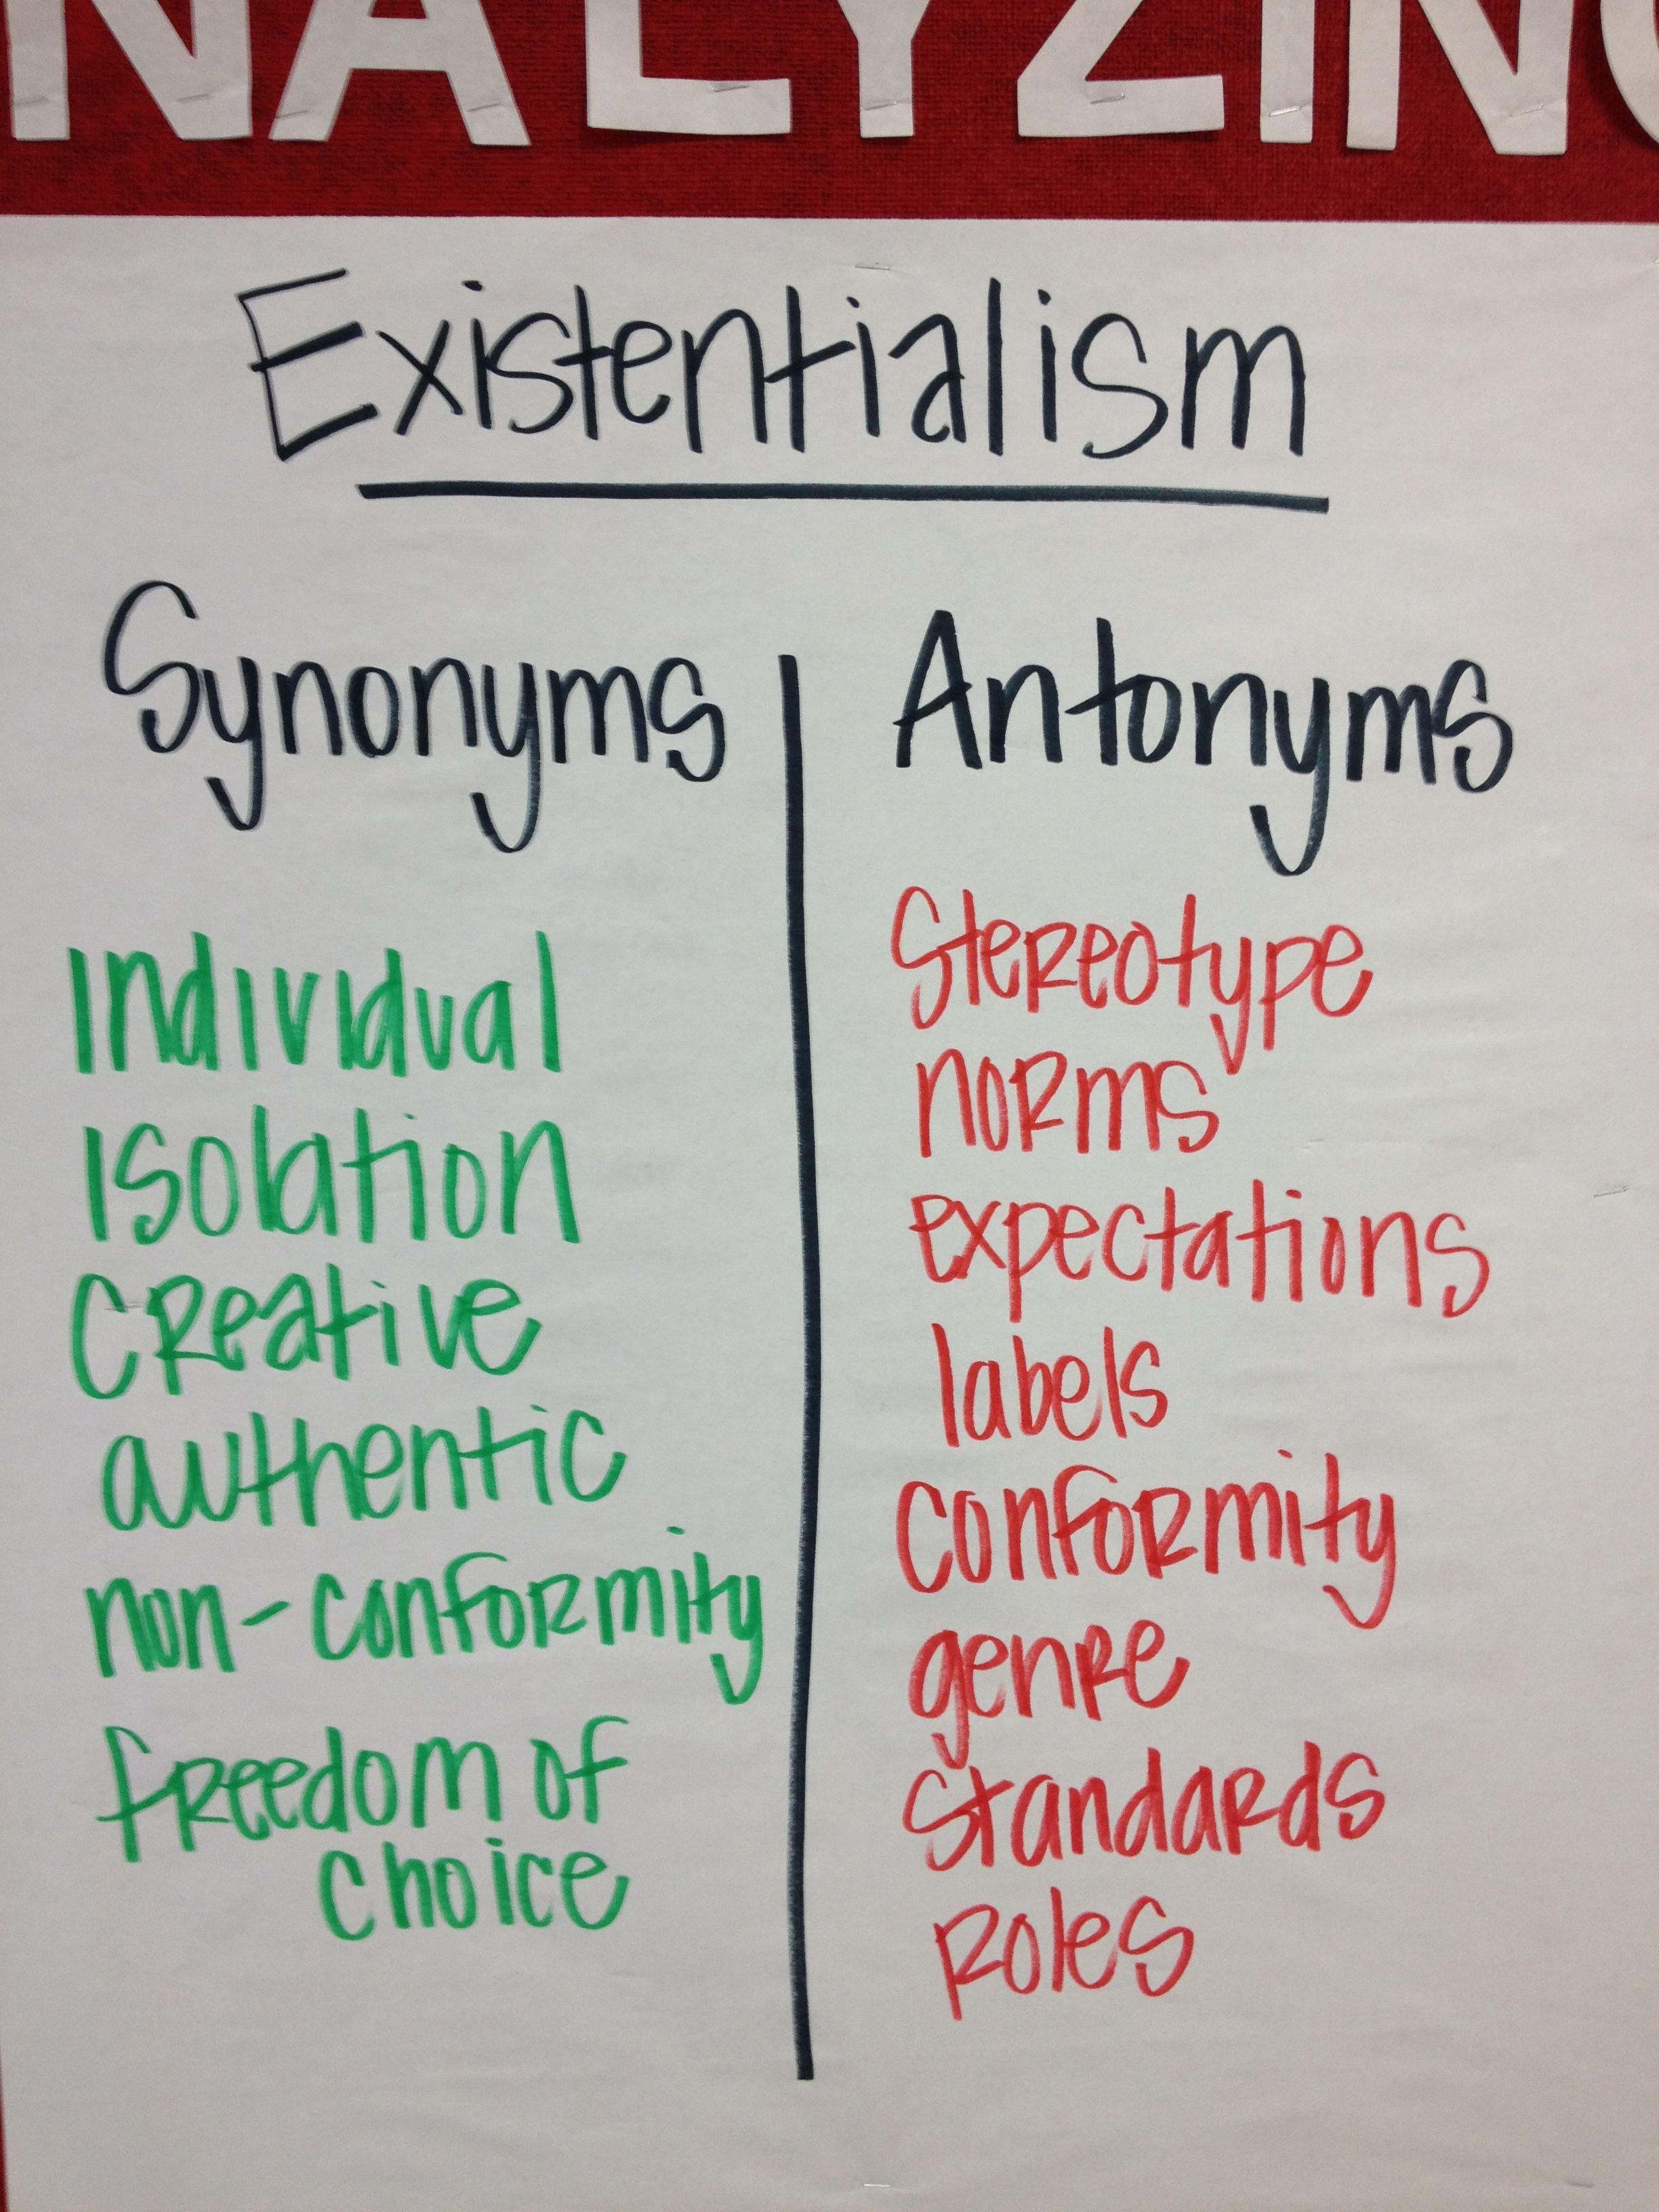 metamorphosis and existentialism Existentialism - metamorphosis cydney clinton andrea ojeda casey hopkins existentialism: is the idea that decisions are not without stress and consequences.